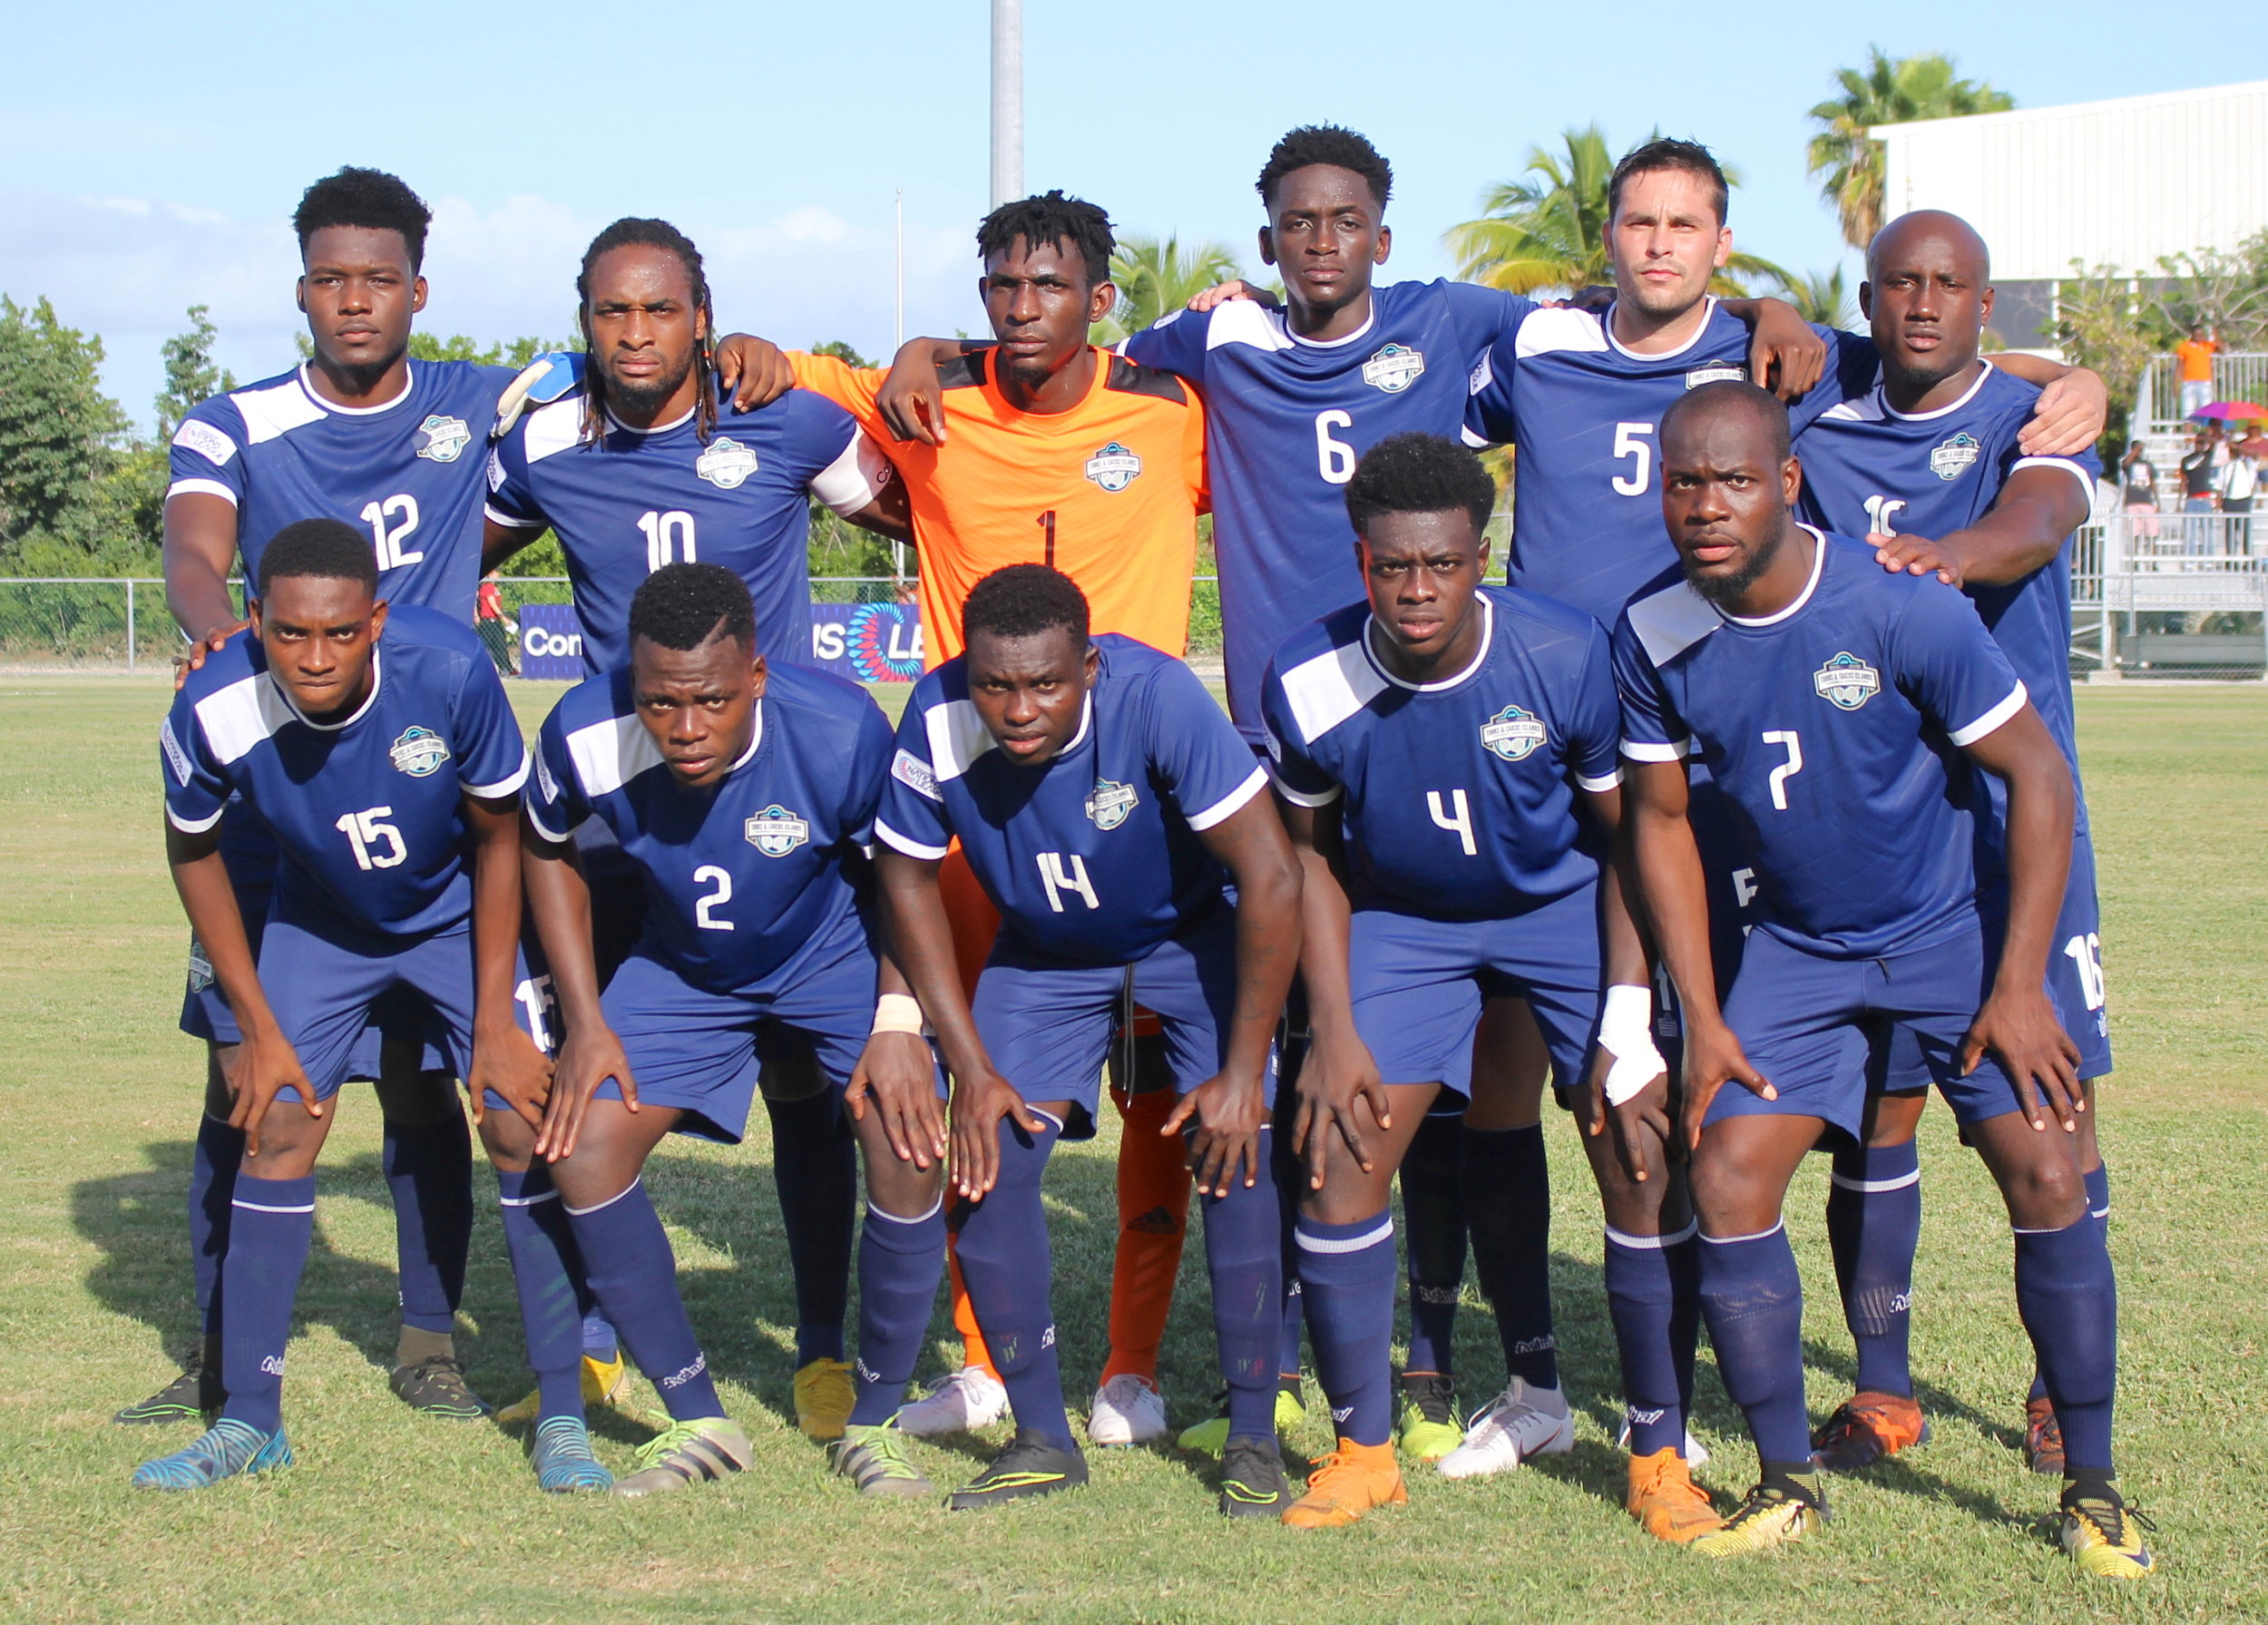 Turks & Caicos Islands starting 11